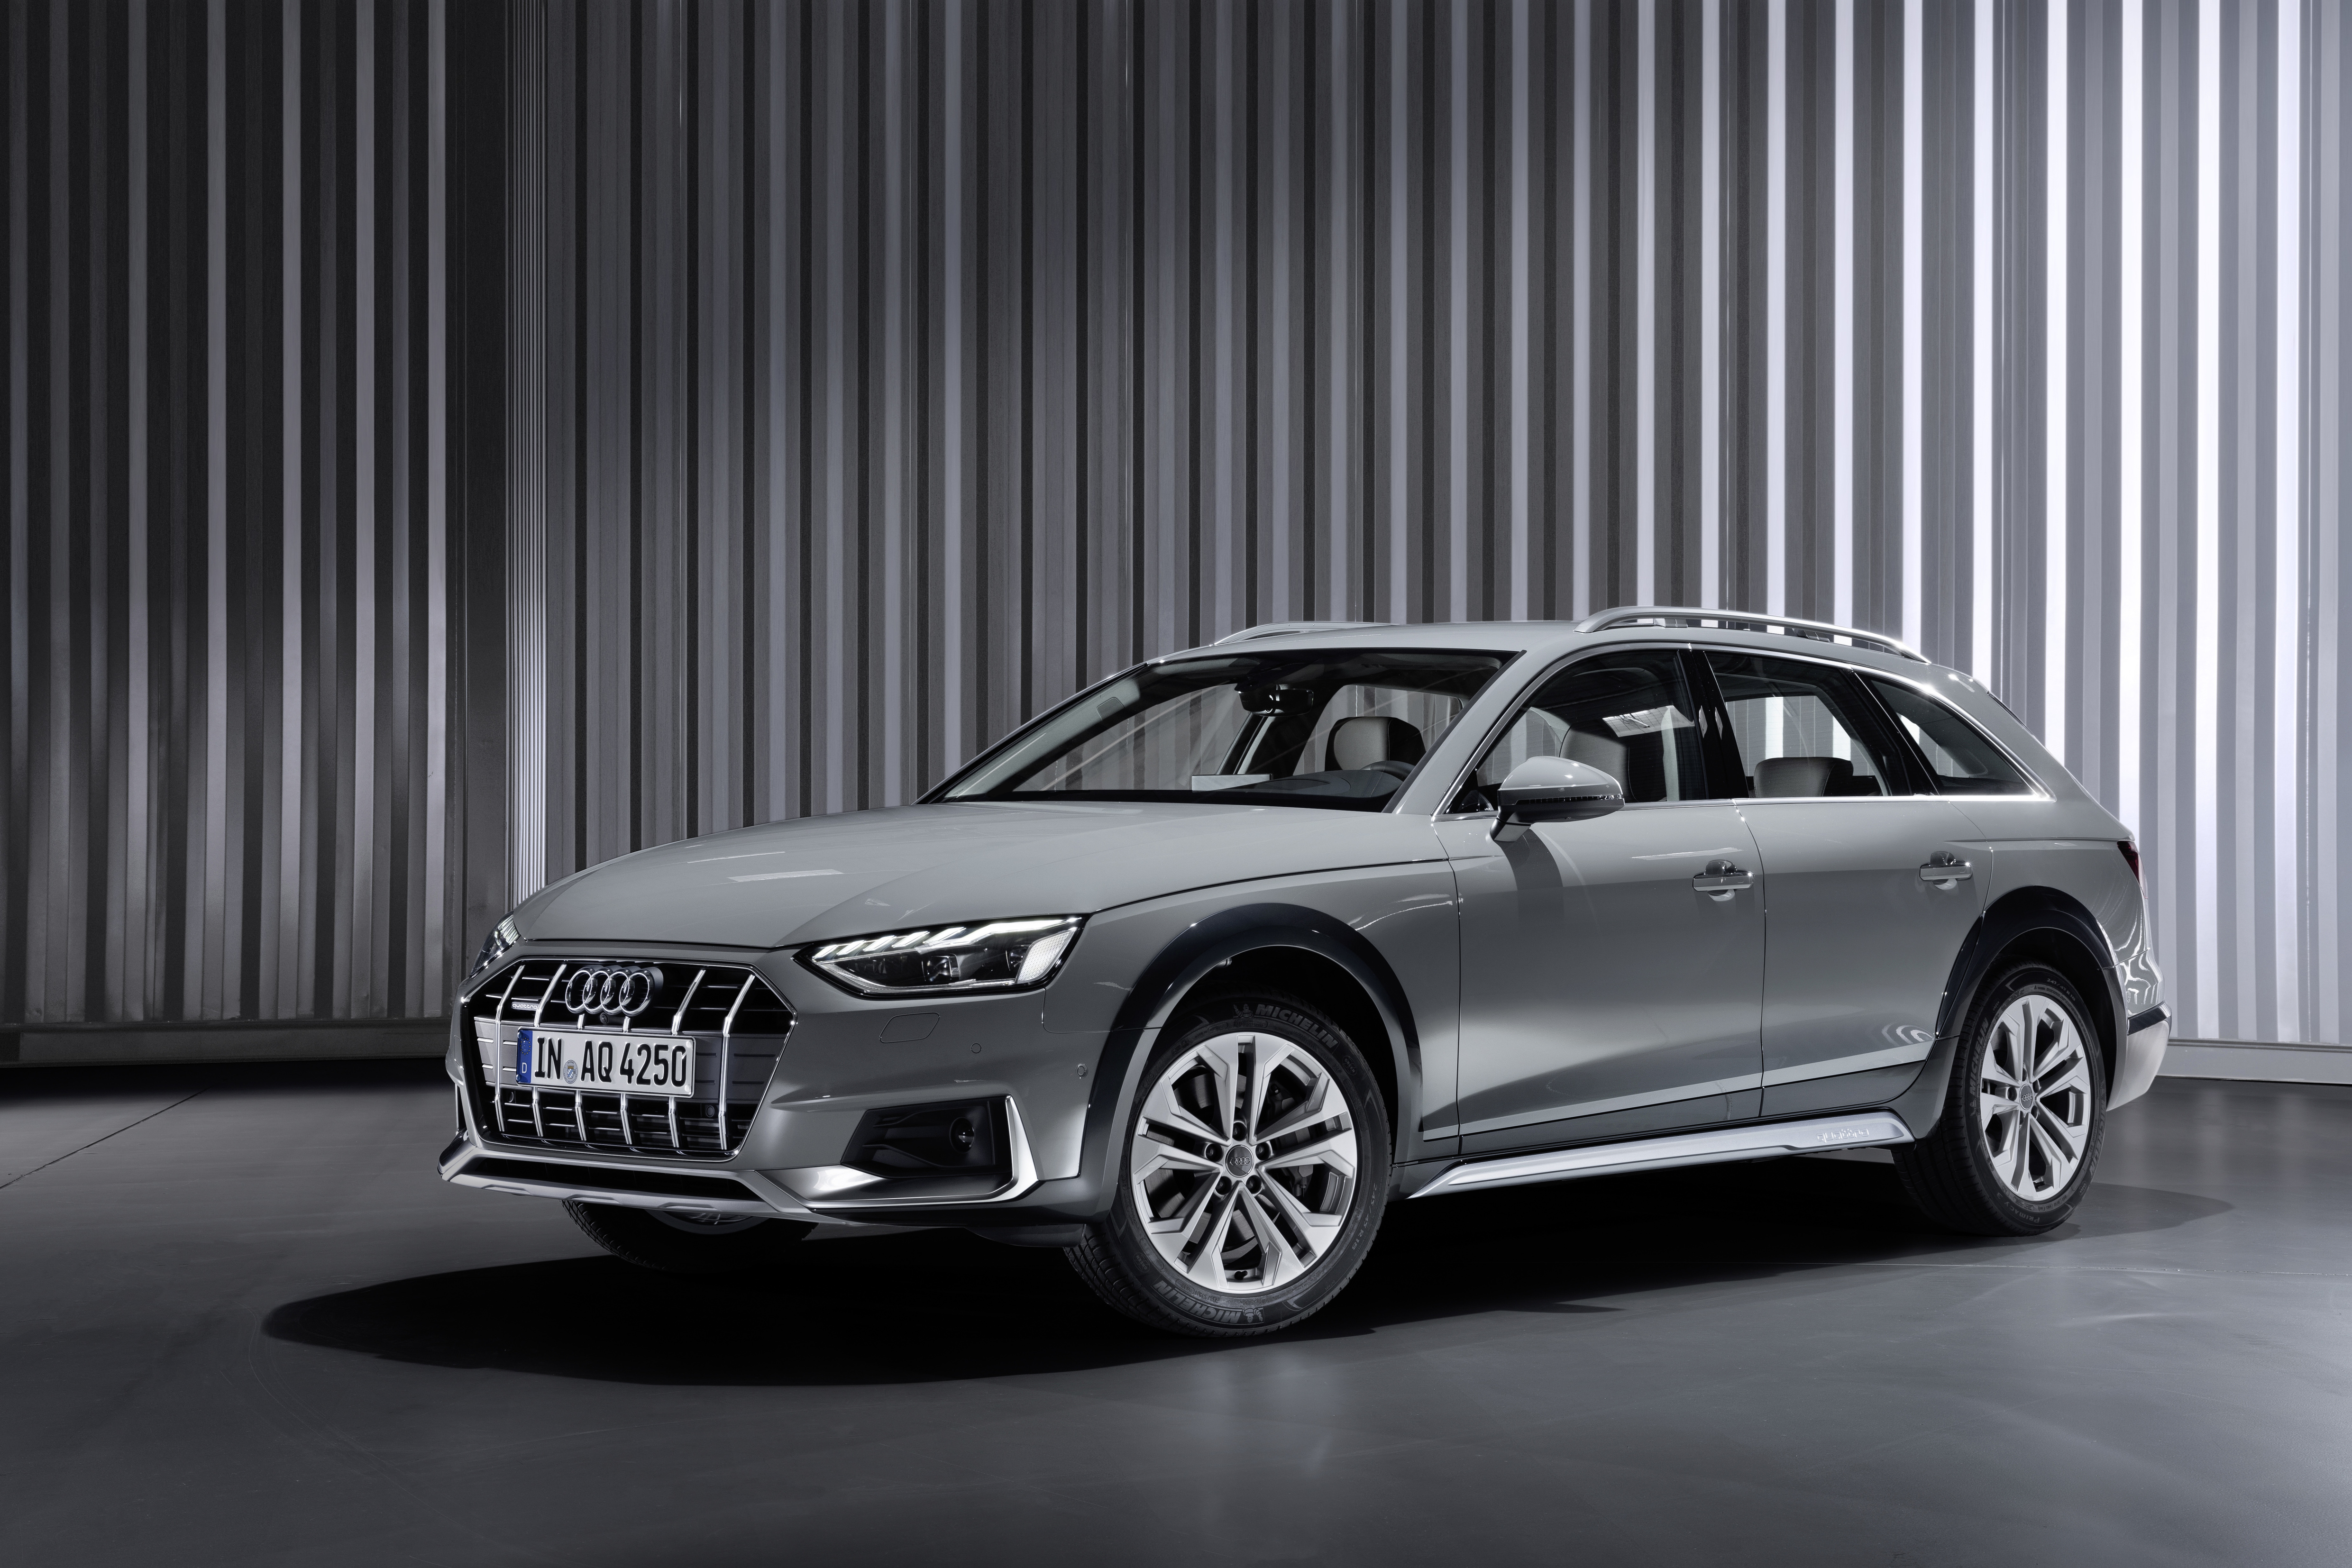 Best Wagons 2020.The 2020 Audi Rs6 Avant Is One Of The Hottest Wagons Ever